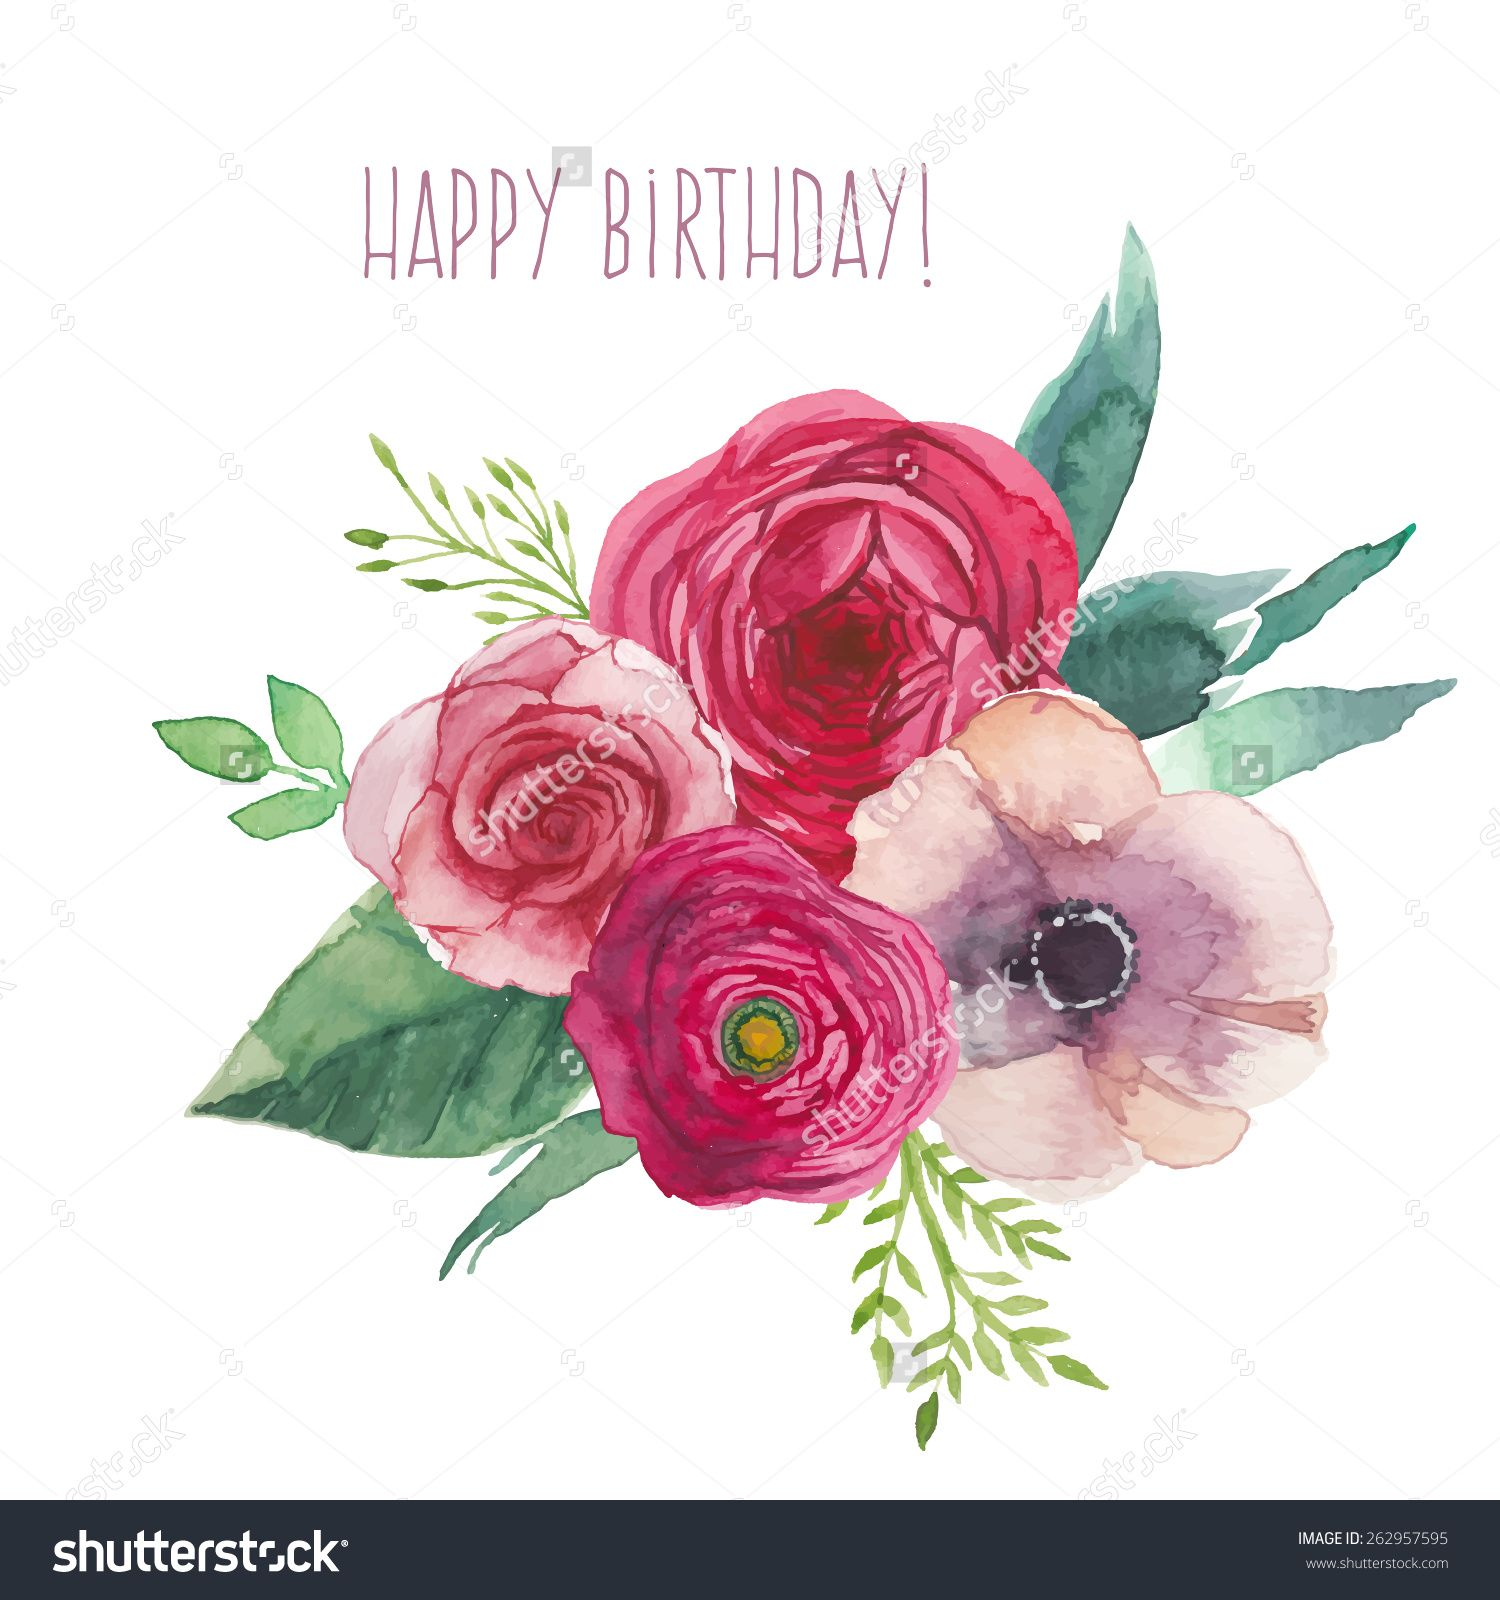 Watercolor happy birthday card with flowers bouquet hand painted watercolor happy birthday card with flowers bouquet hand painted isolated posy with roses ranunculus anemones leaves and floral elements vector artwork izmirmasajfo